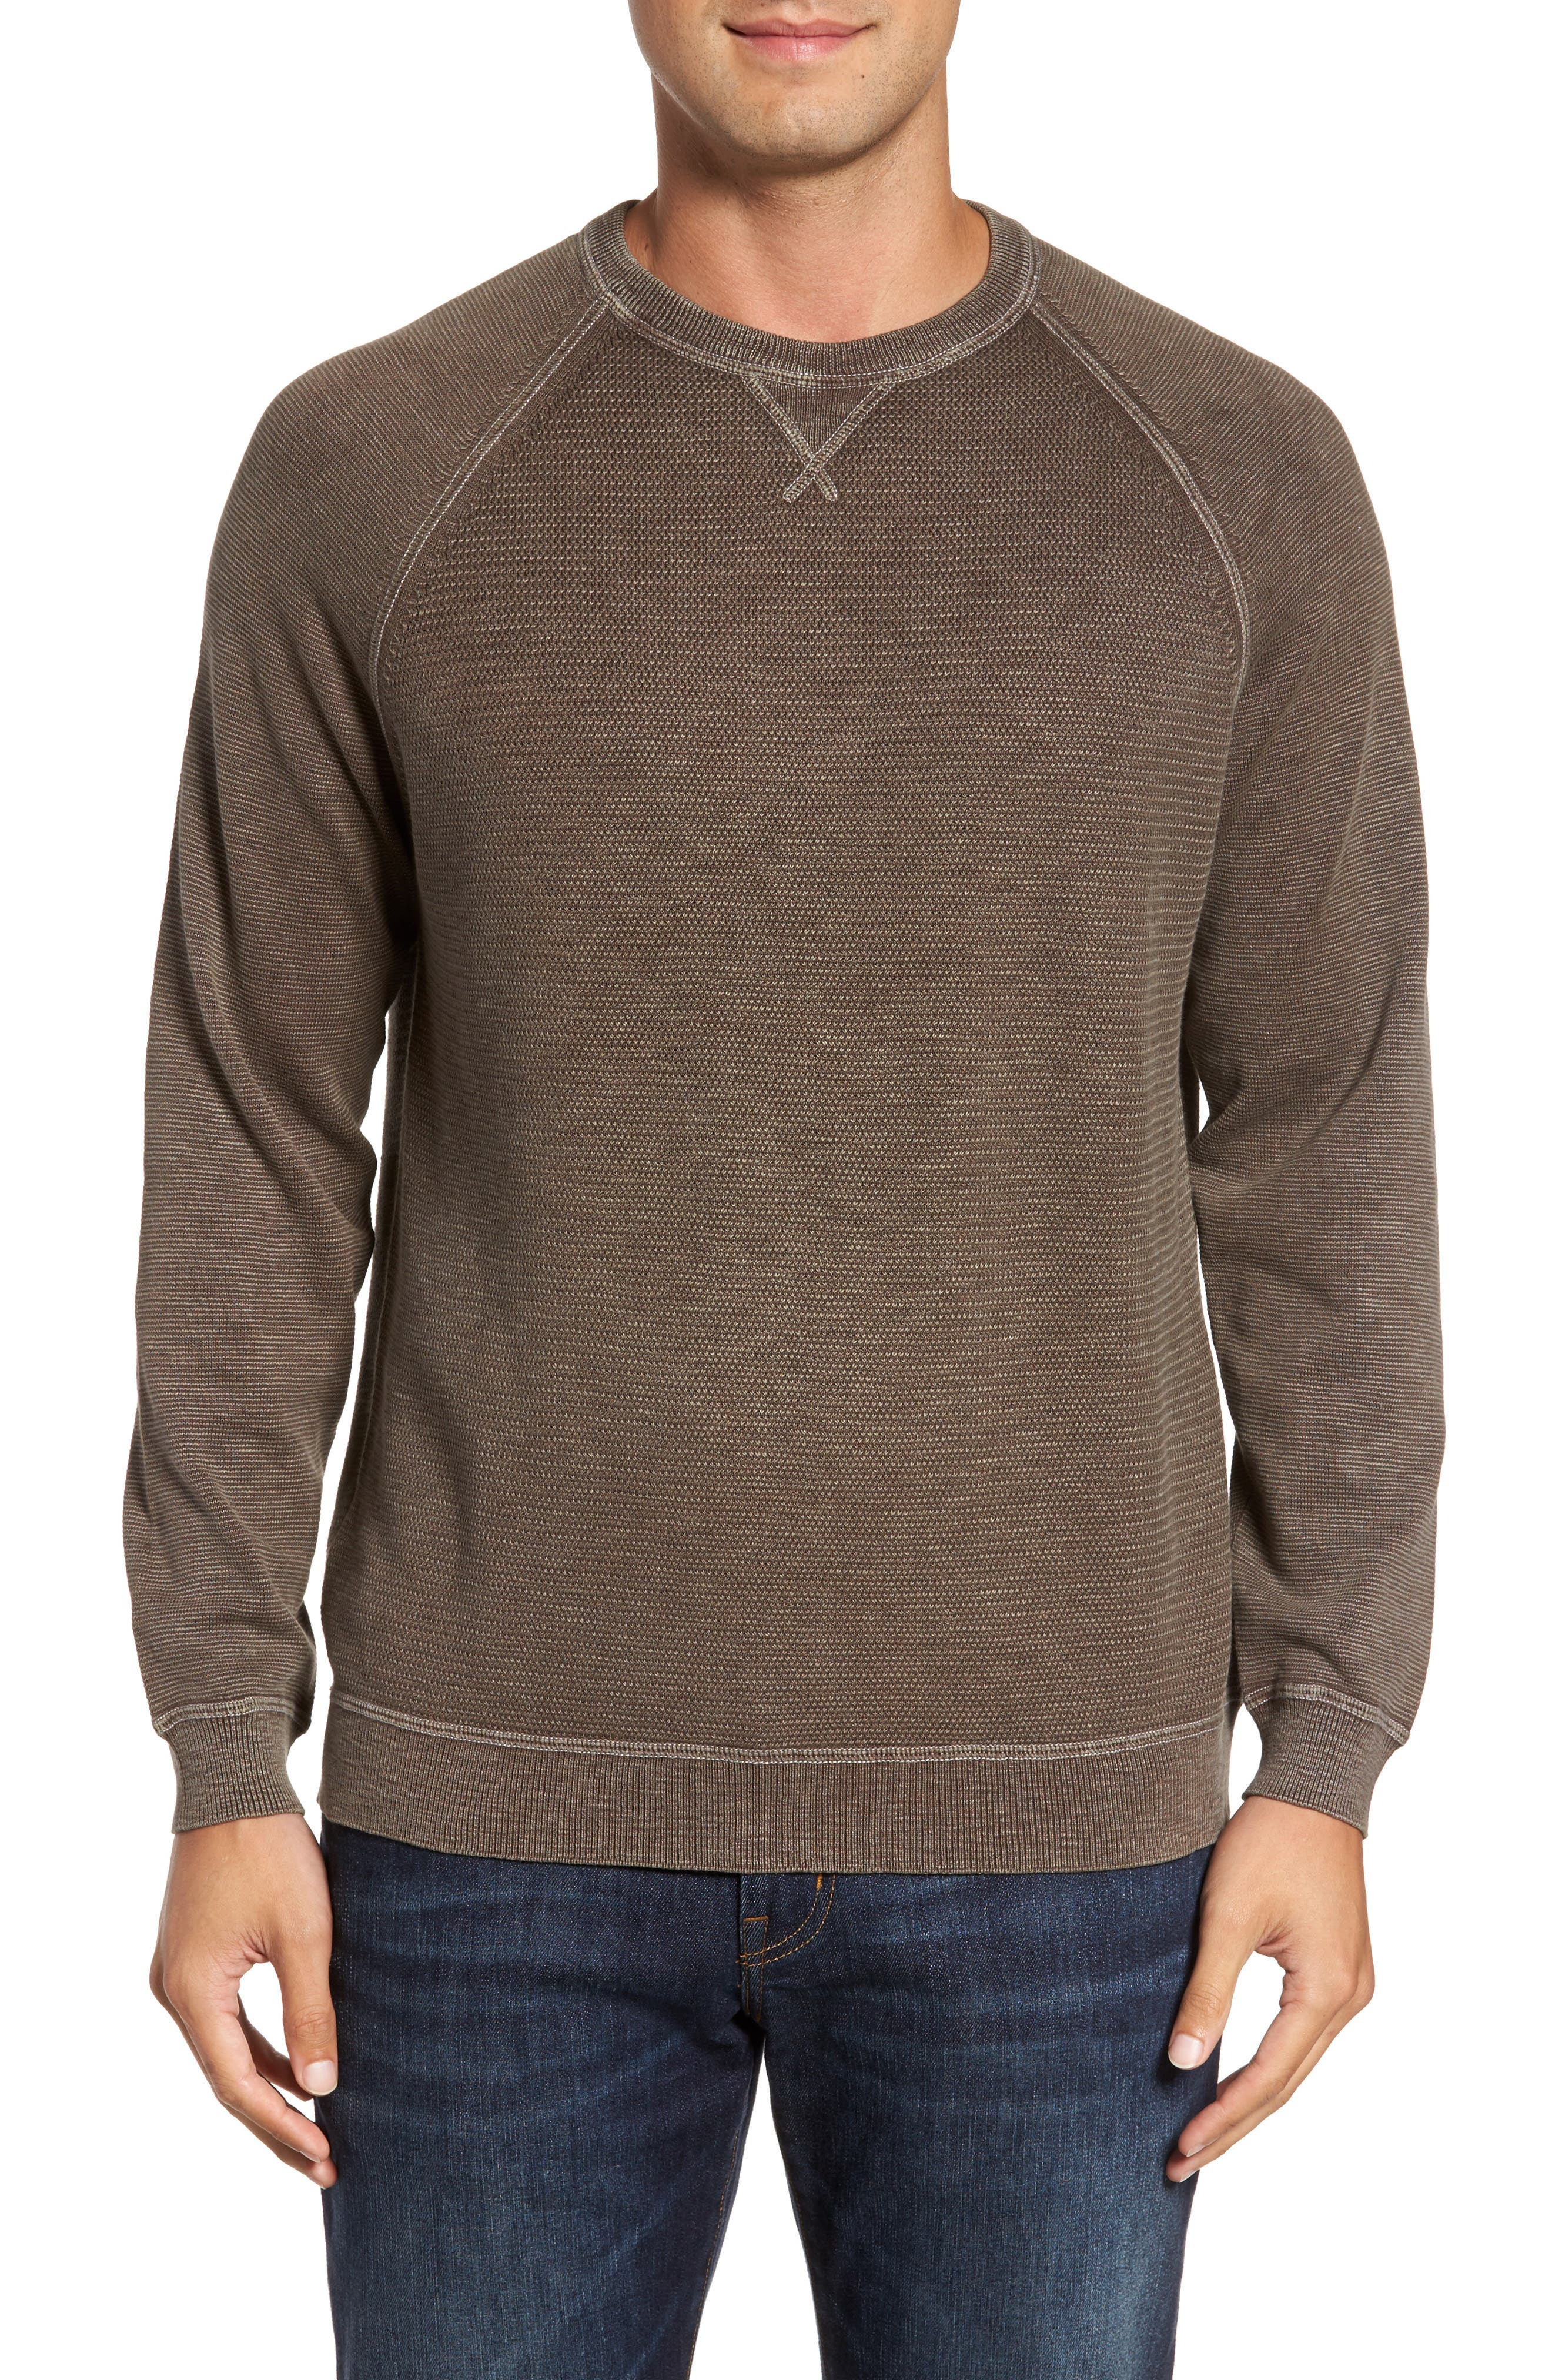 Saltwater Tide Pullover,                         Main,                         color, 200